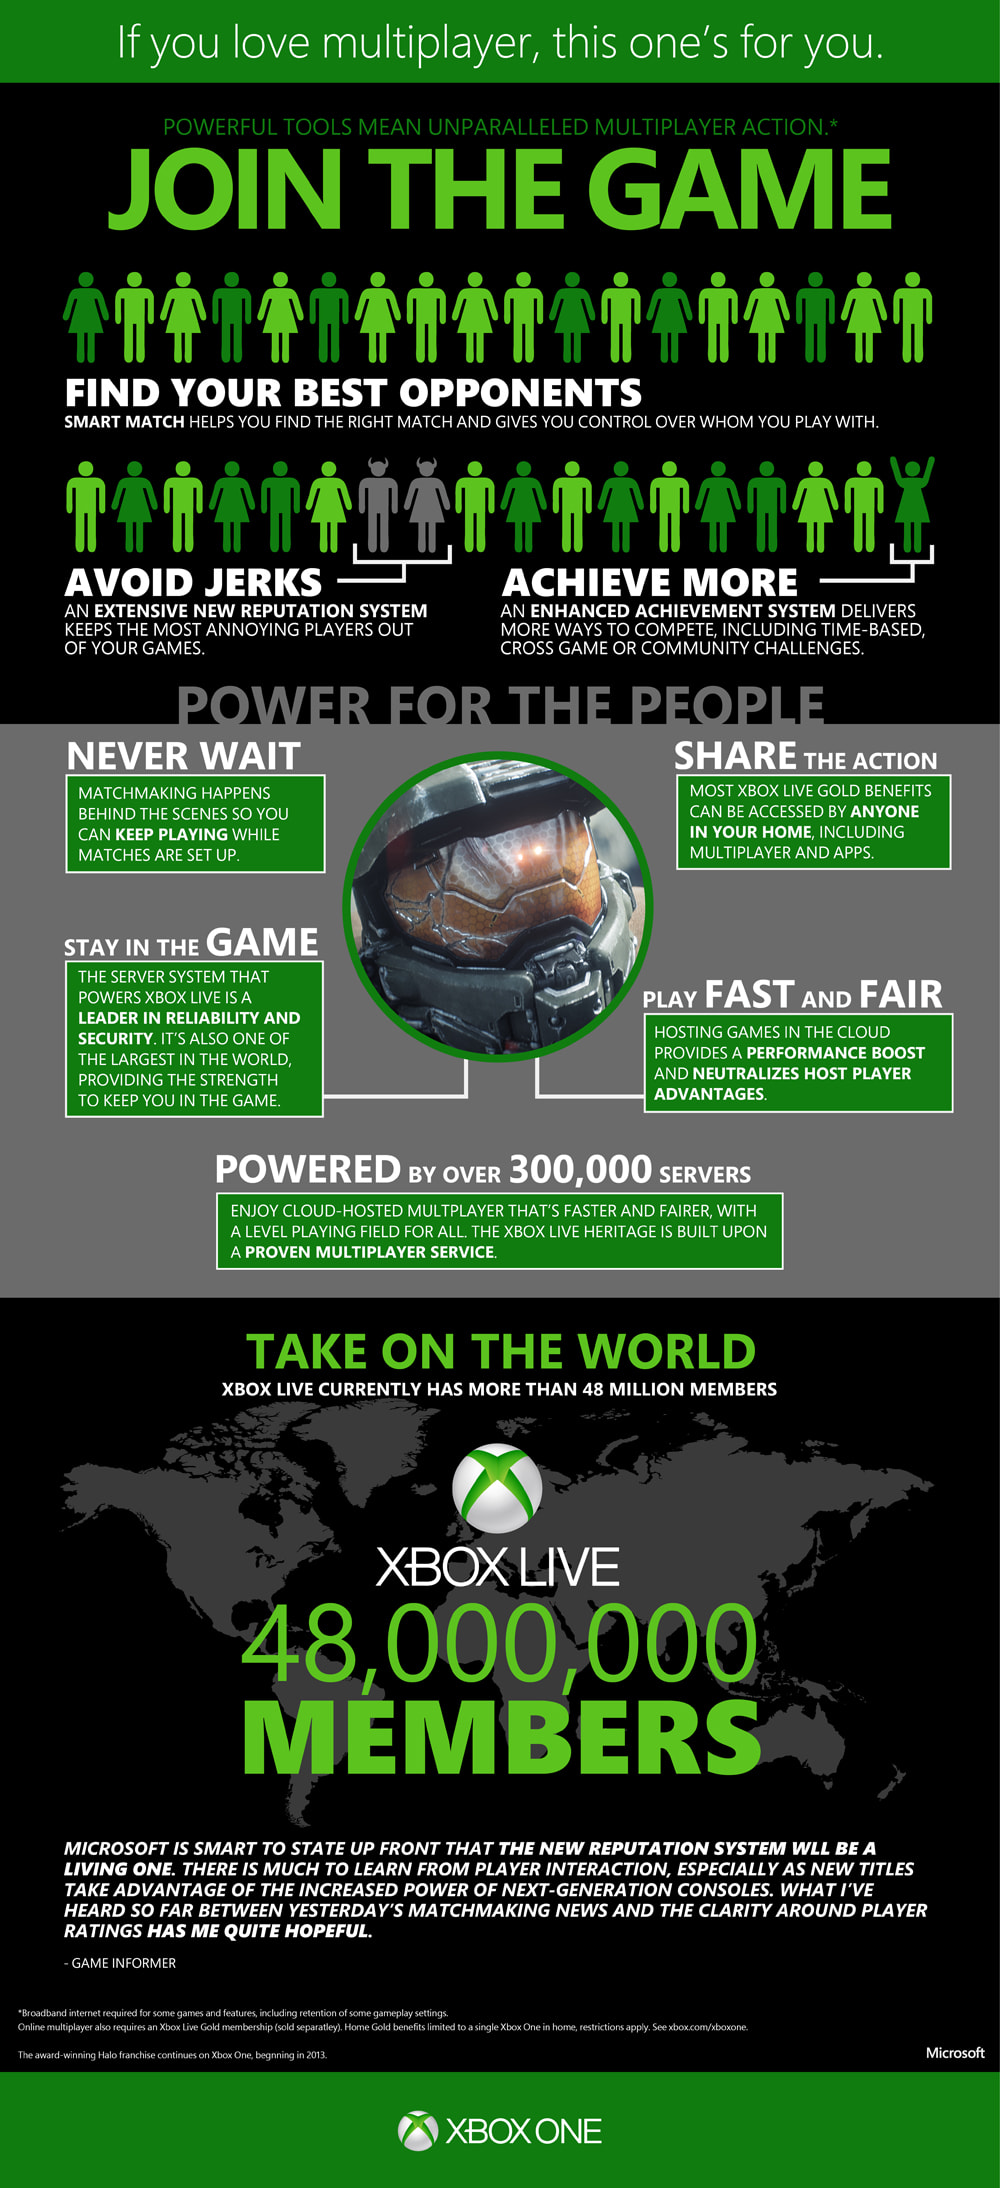 Xbox One Multiplayer Infographic at GAME